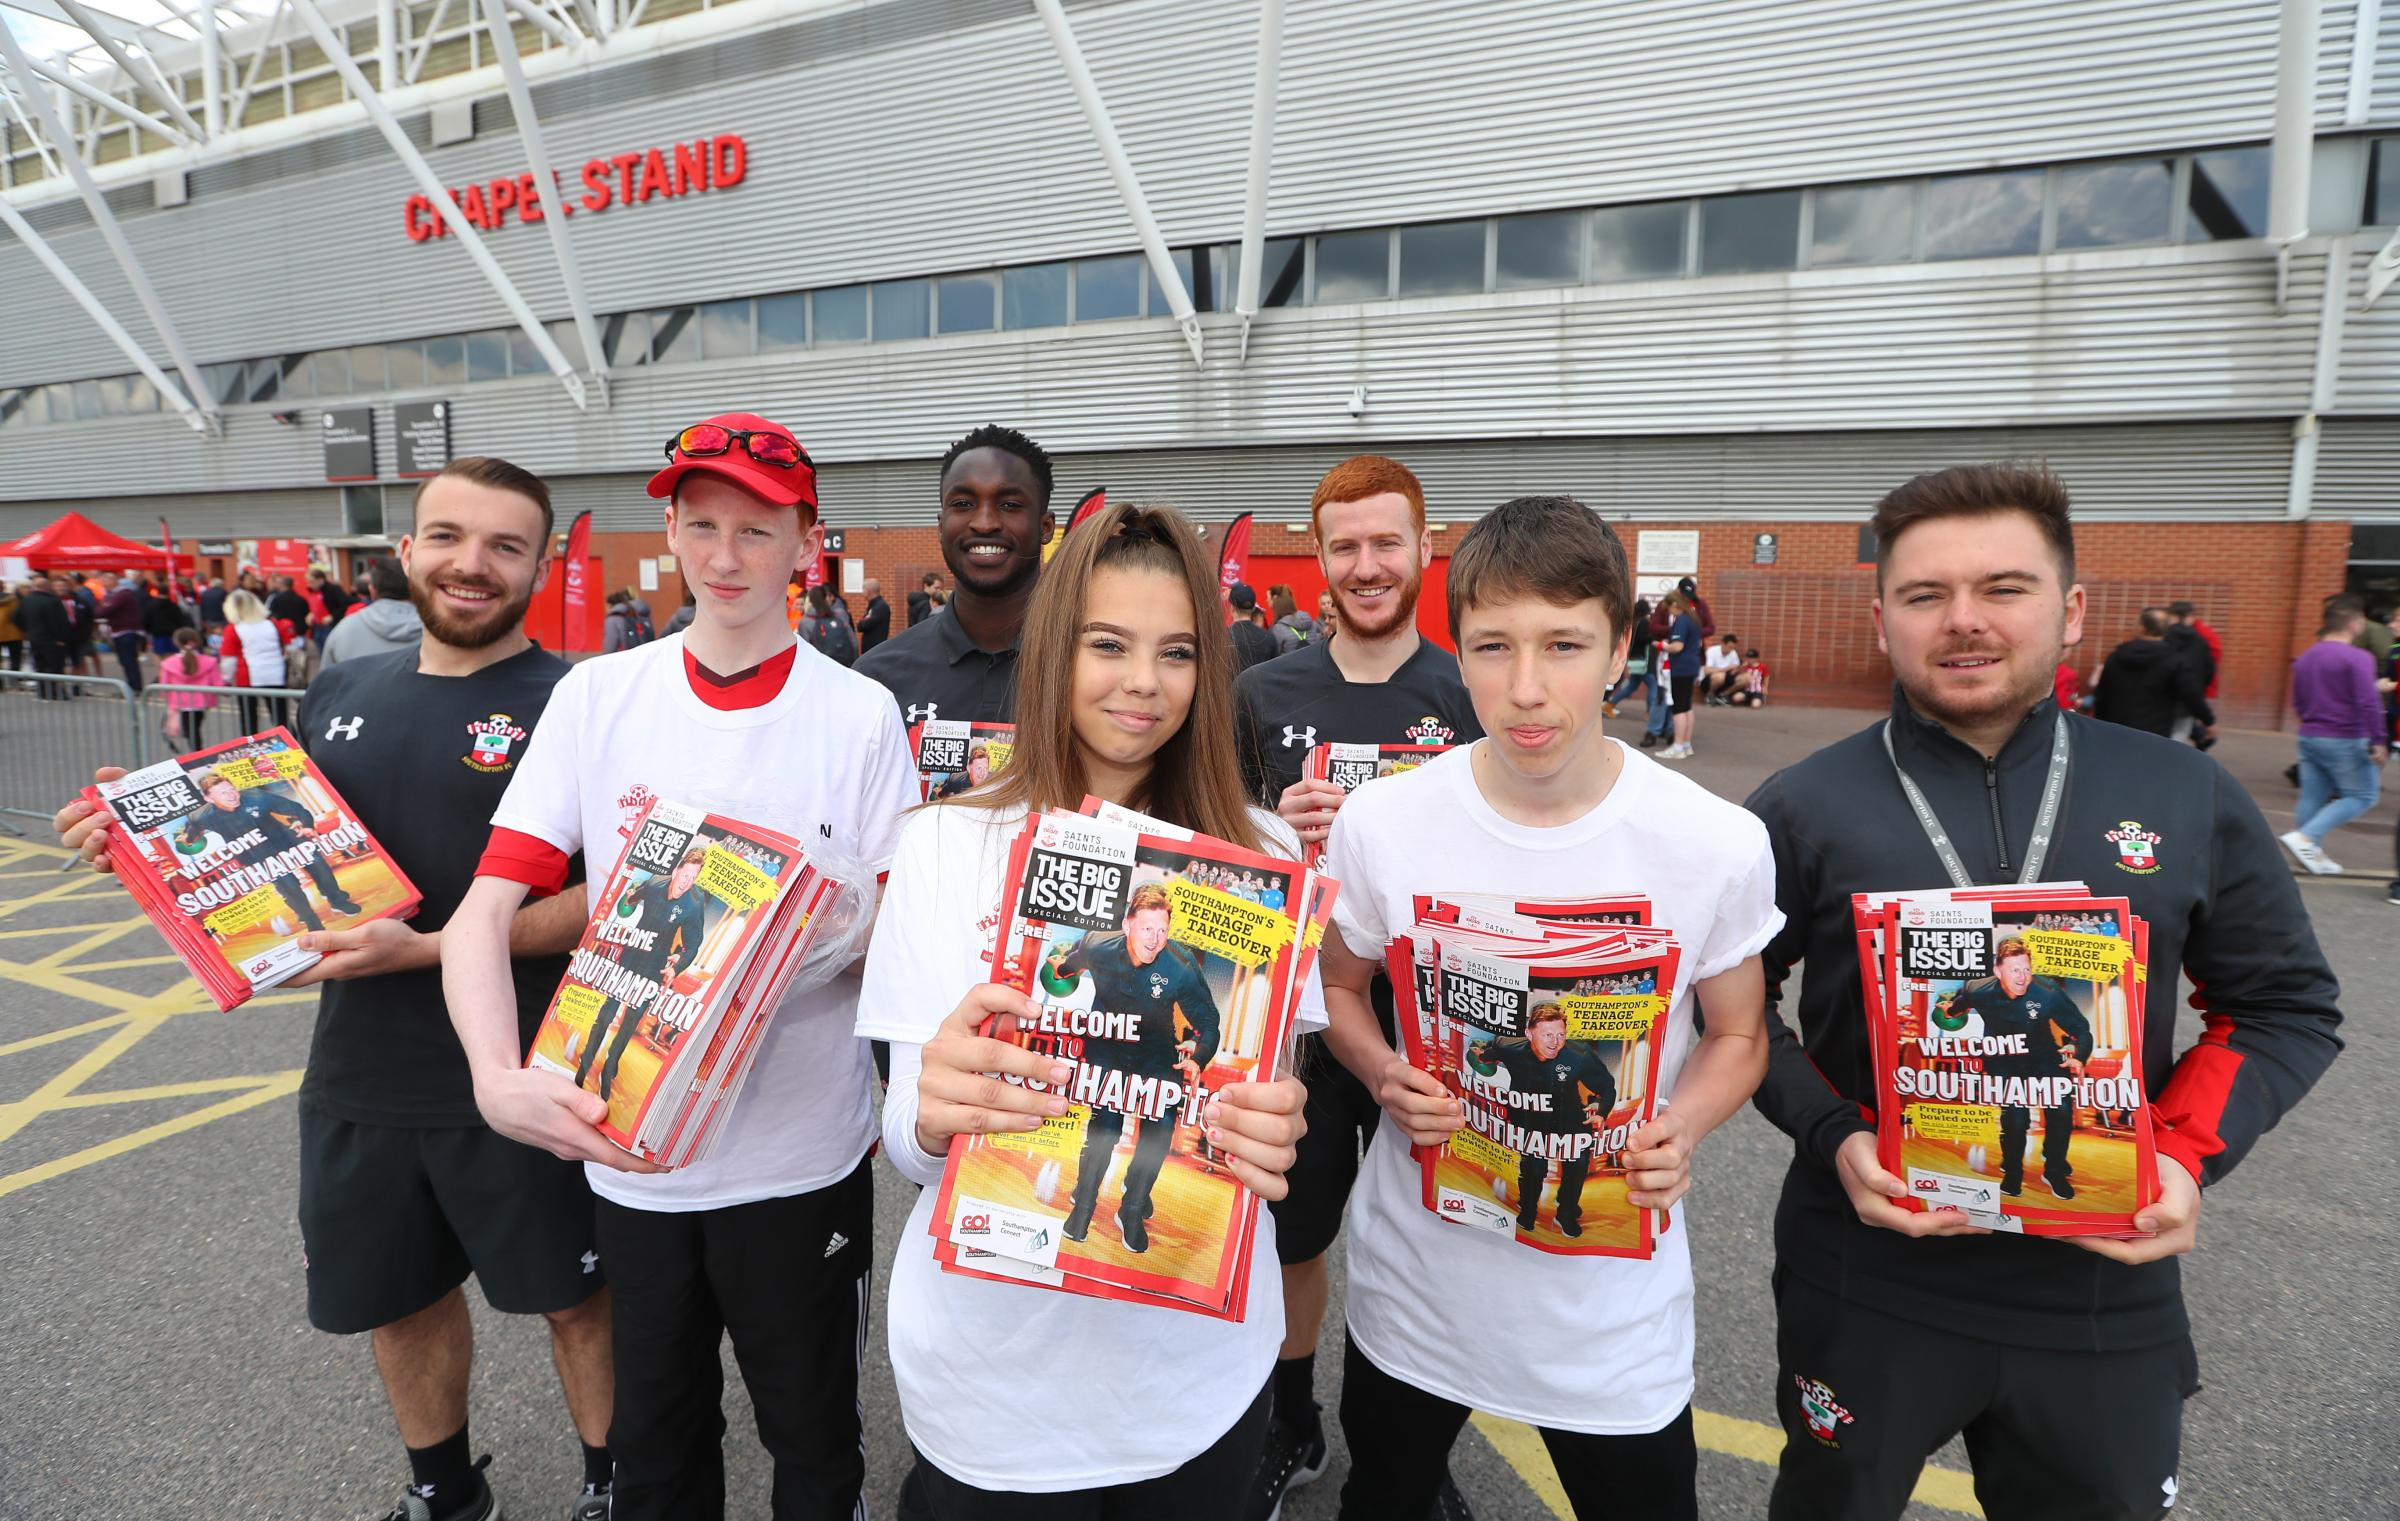 Southampton school pupils with members of the Saints Community champions handing out copies of the Big Issue at St Mary's Stadium